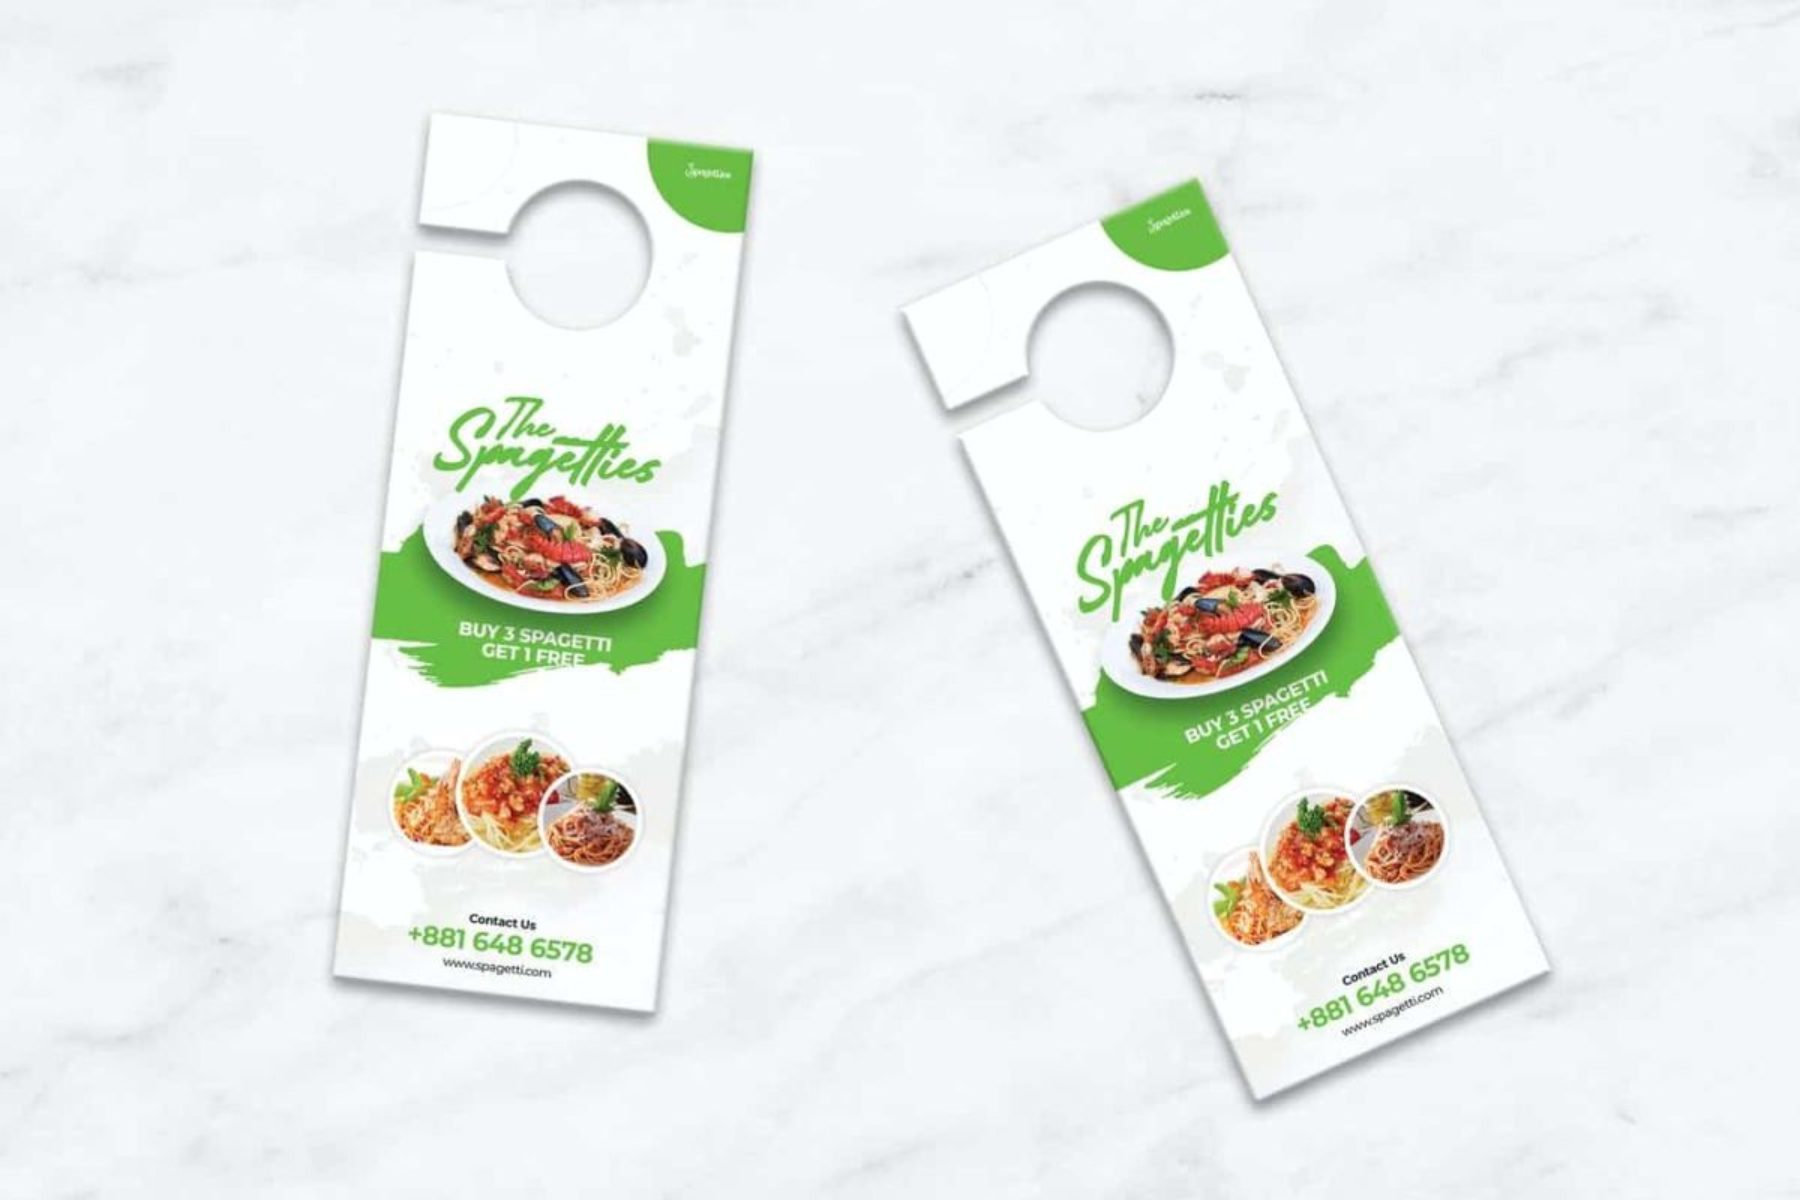 For Sale Full Color Door Hangers - Restaurant Promo